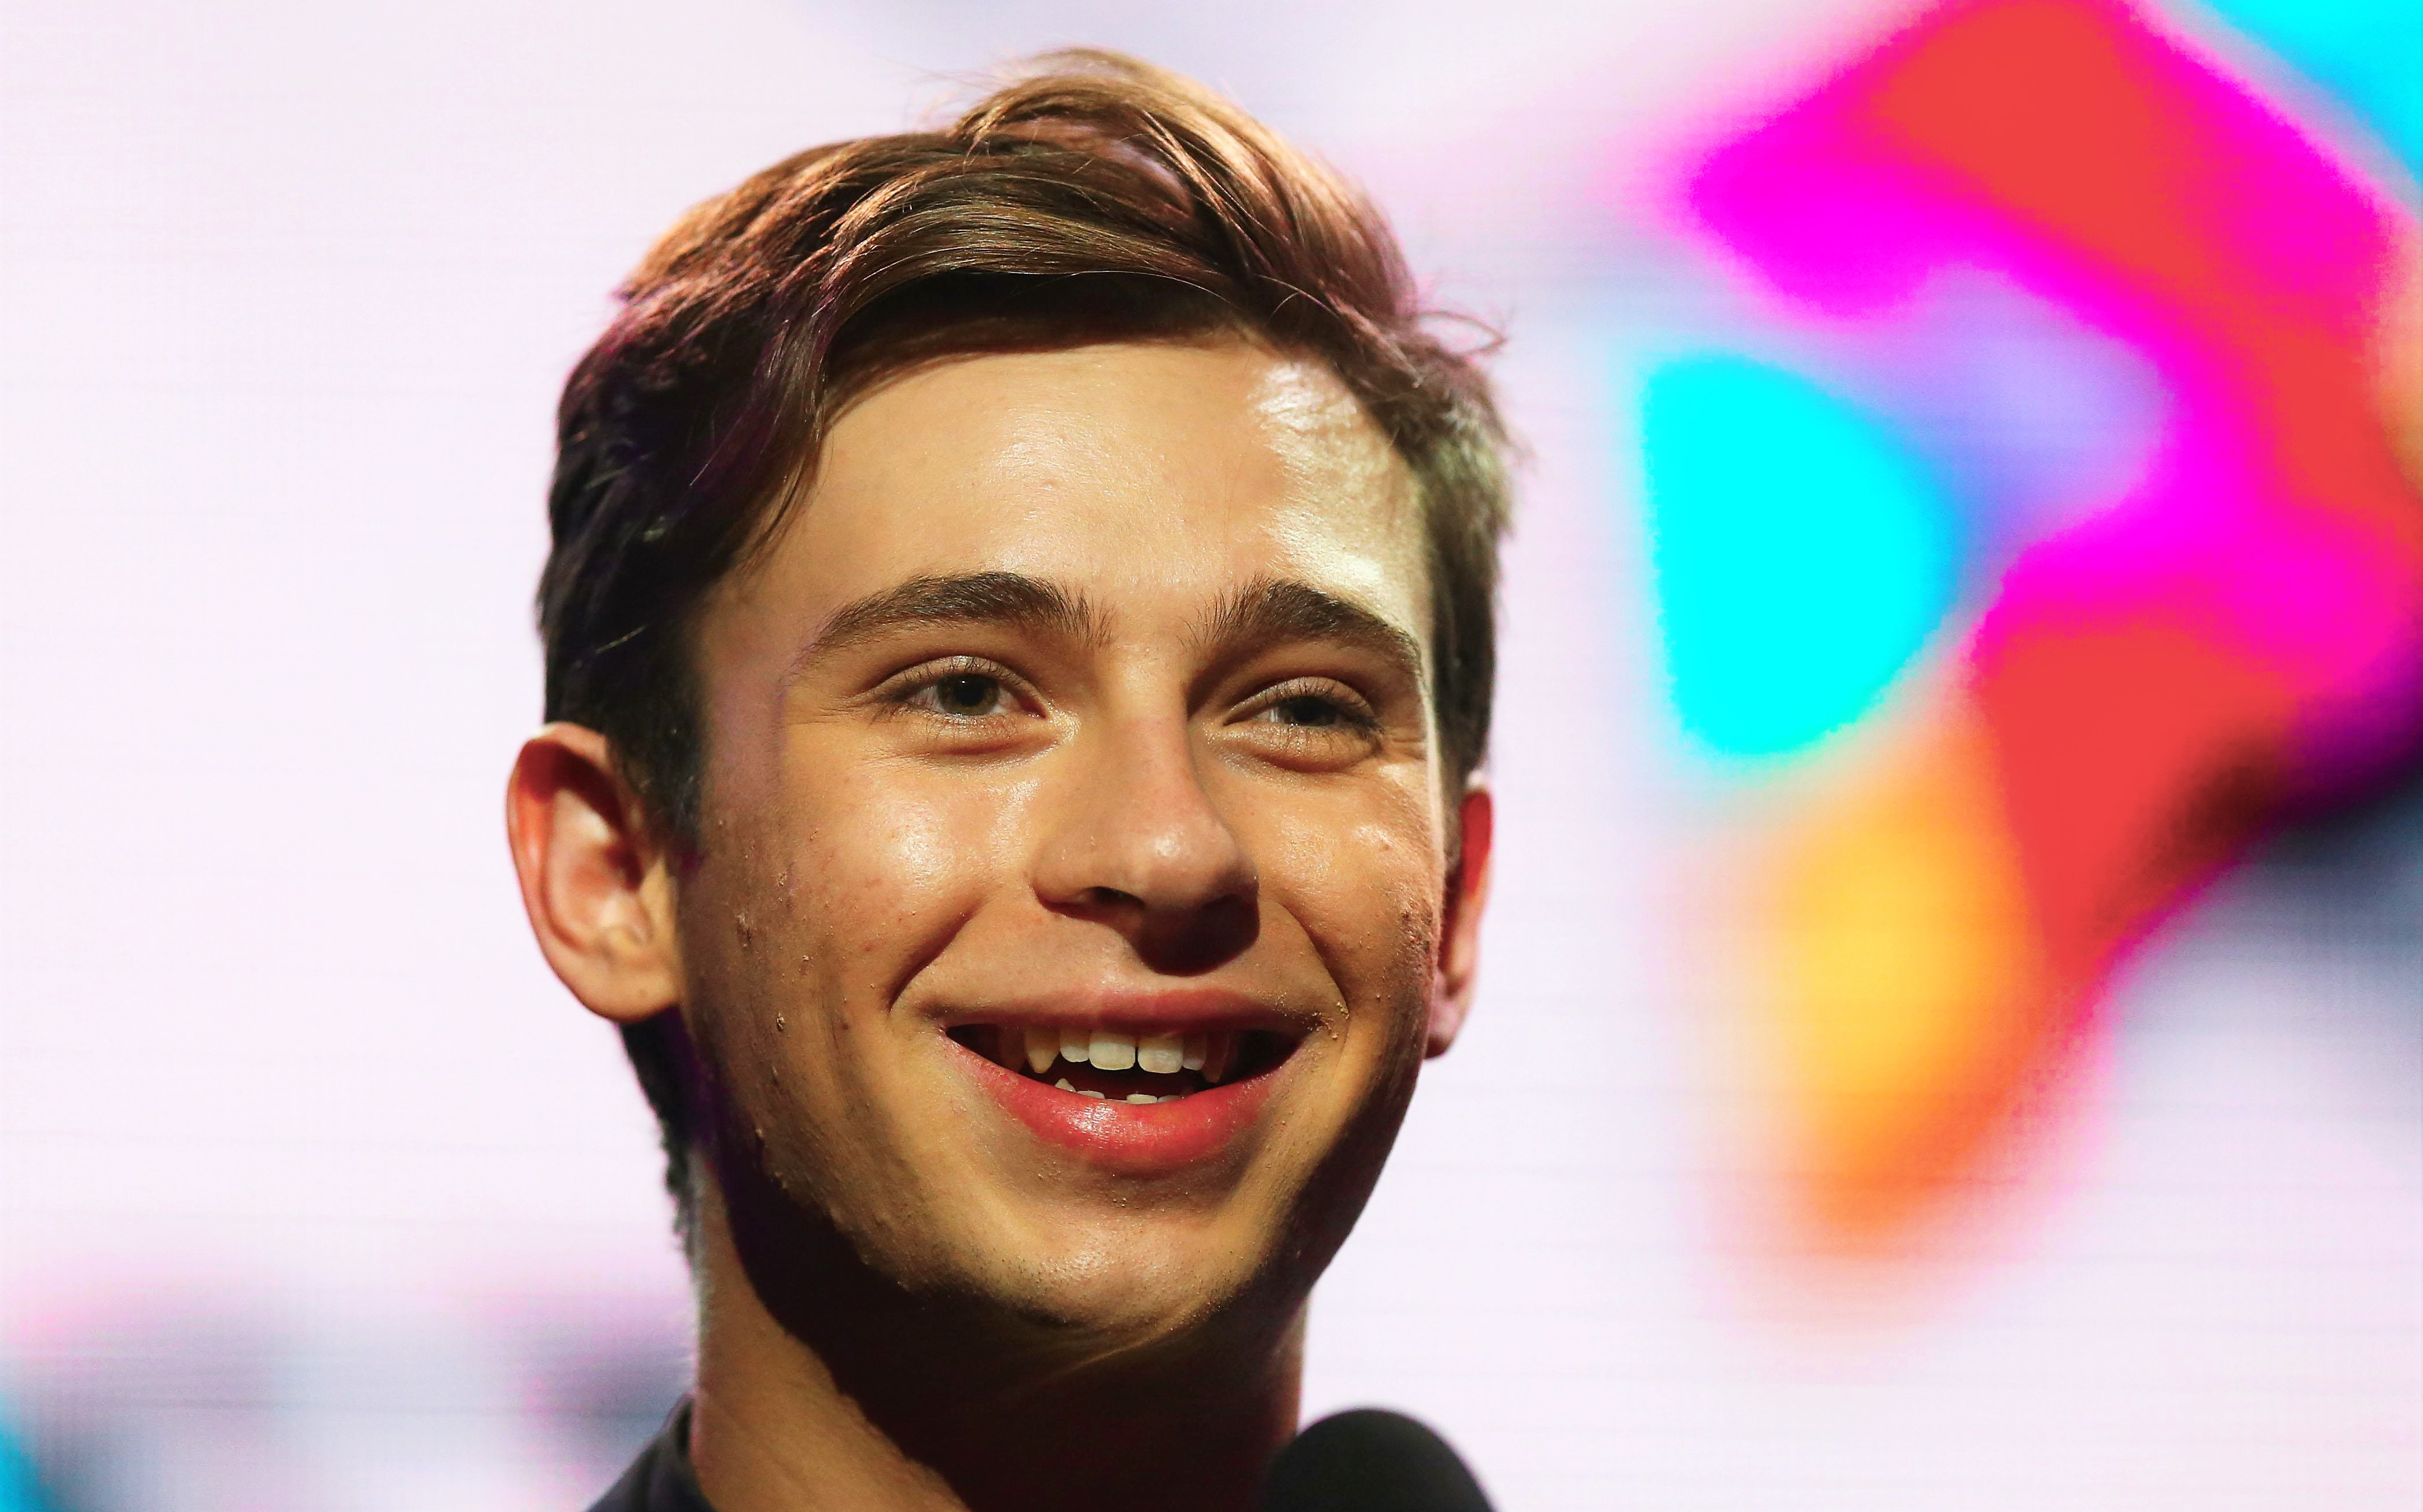 SYDNEY, AUSTRALIA - DECEMBER 01: Flume accepts the award for 'Best Male Artist' during the 27th Annual ARIA Awards 2013 at the Star on December 1, 2013 in Sydney, Australia. (Photo by Ryan Pierse/Getty Images)